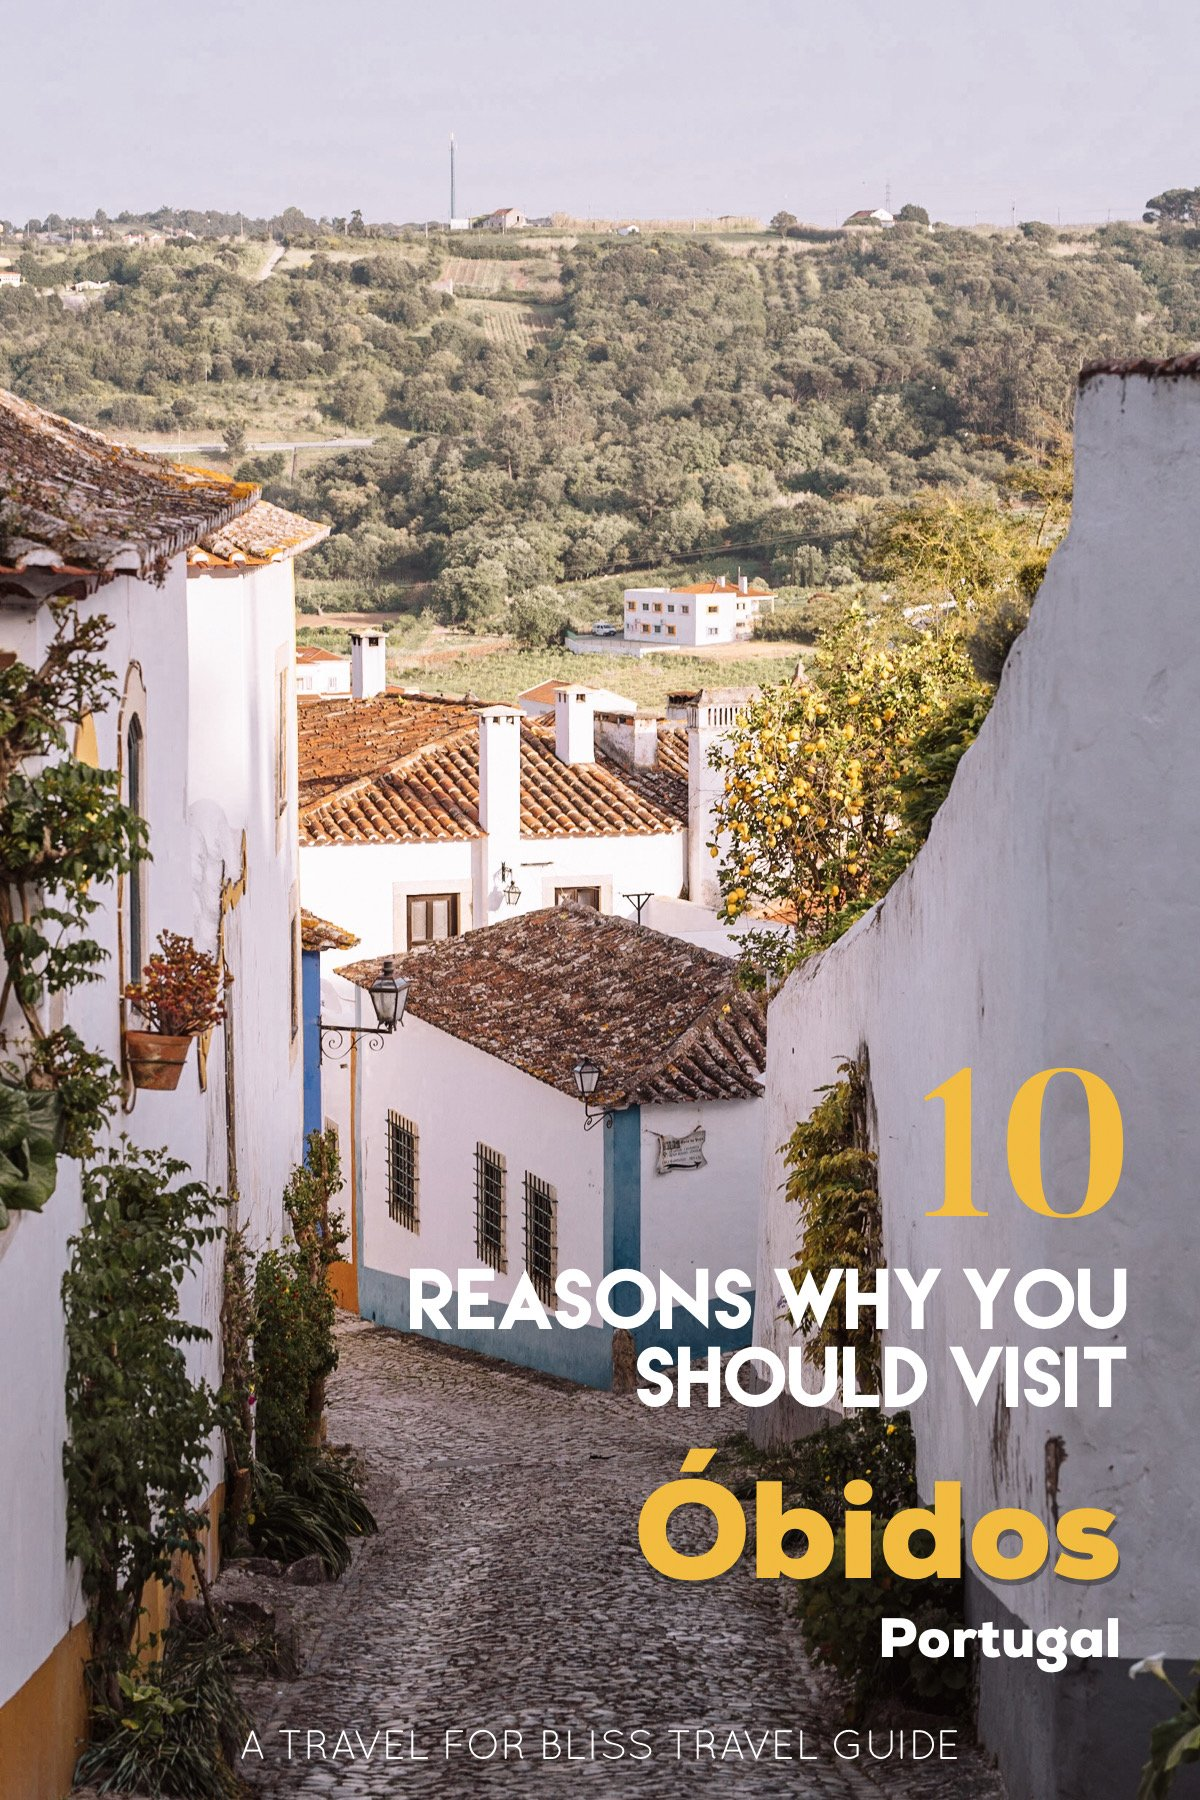 10 Reasons Why You Should Visit Obidos Portugal